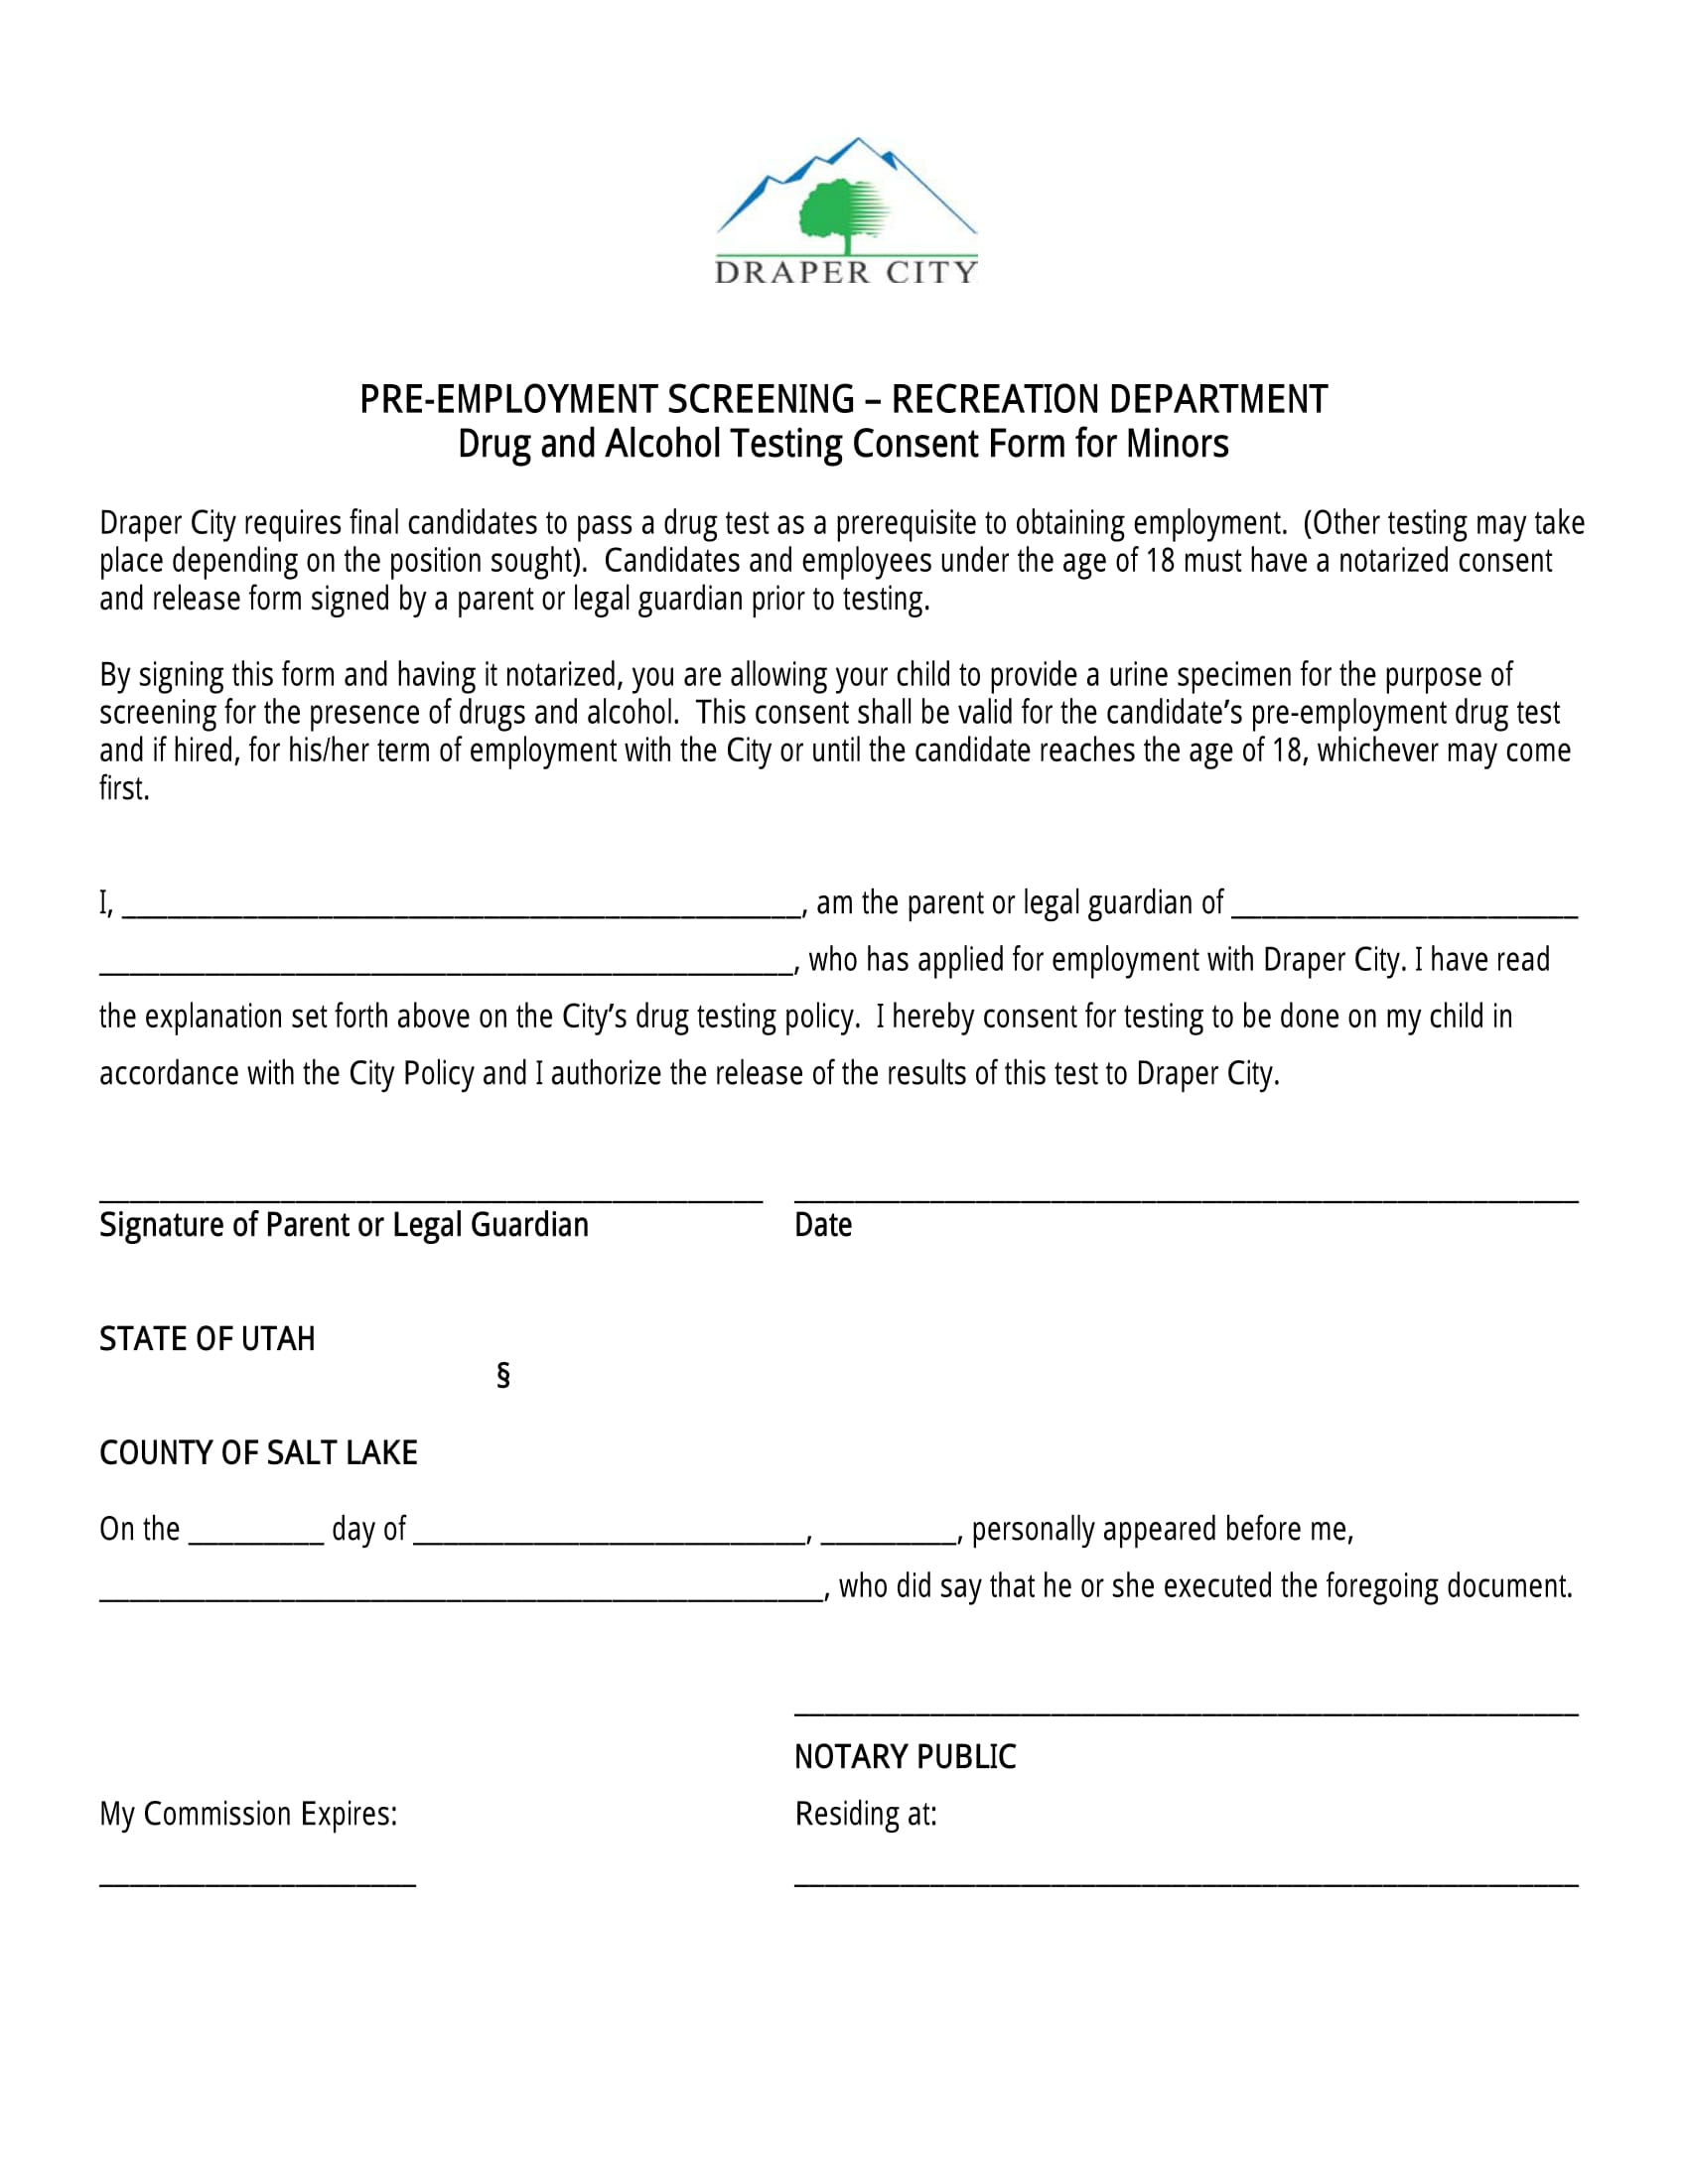 minor employee drug test consent form 1